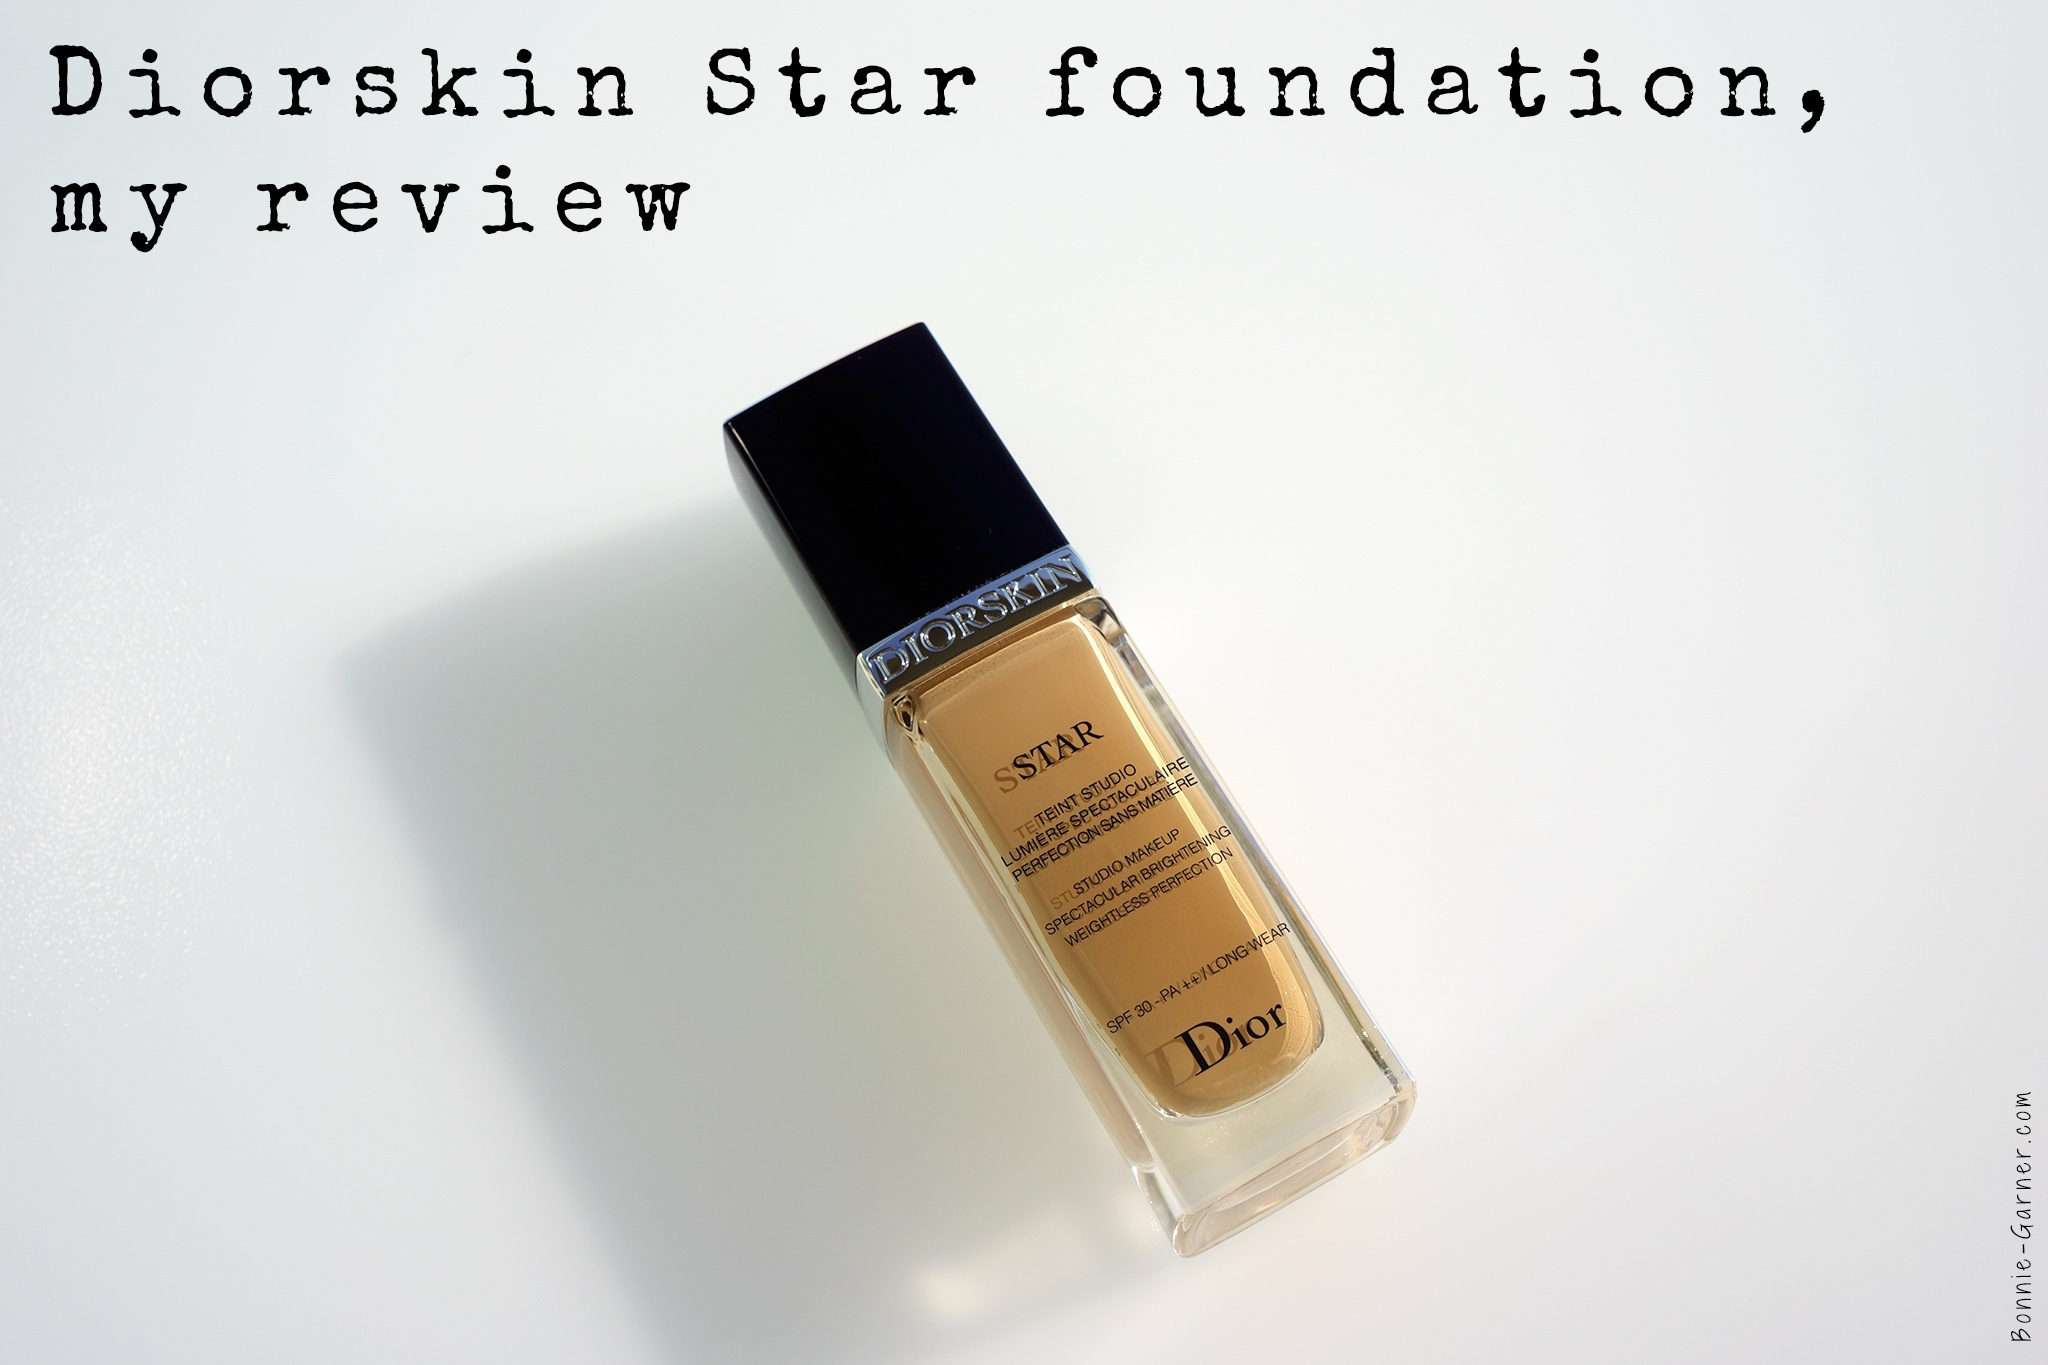 Diorskin Star Foundation my review